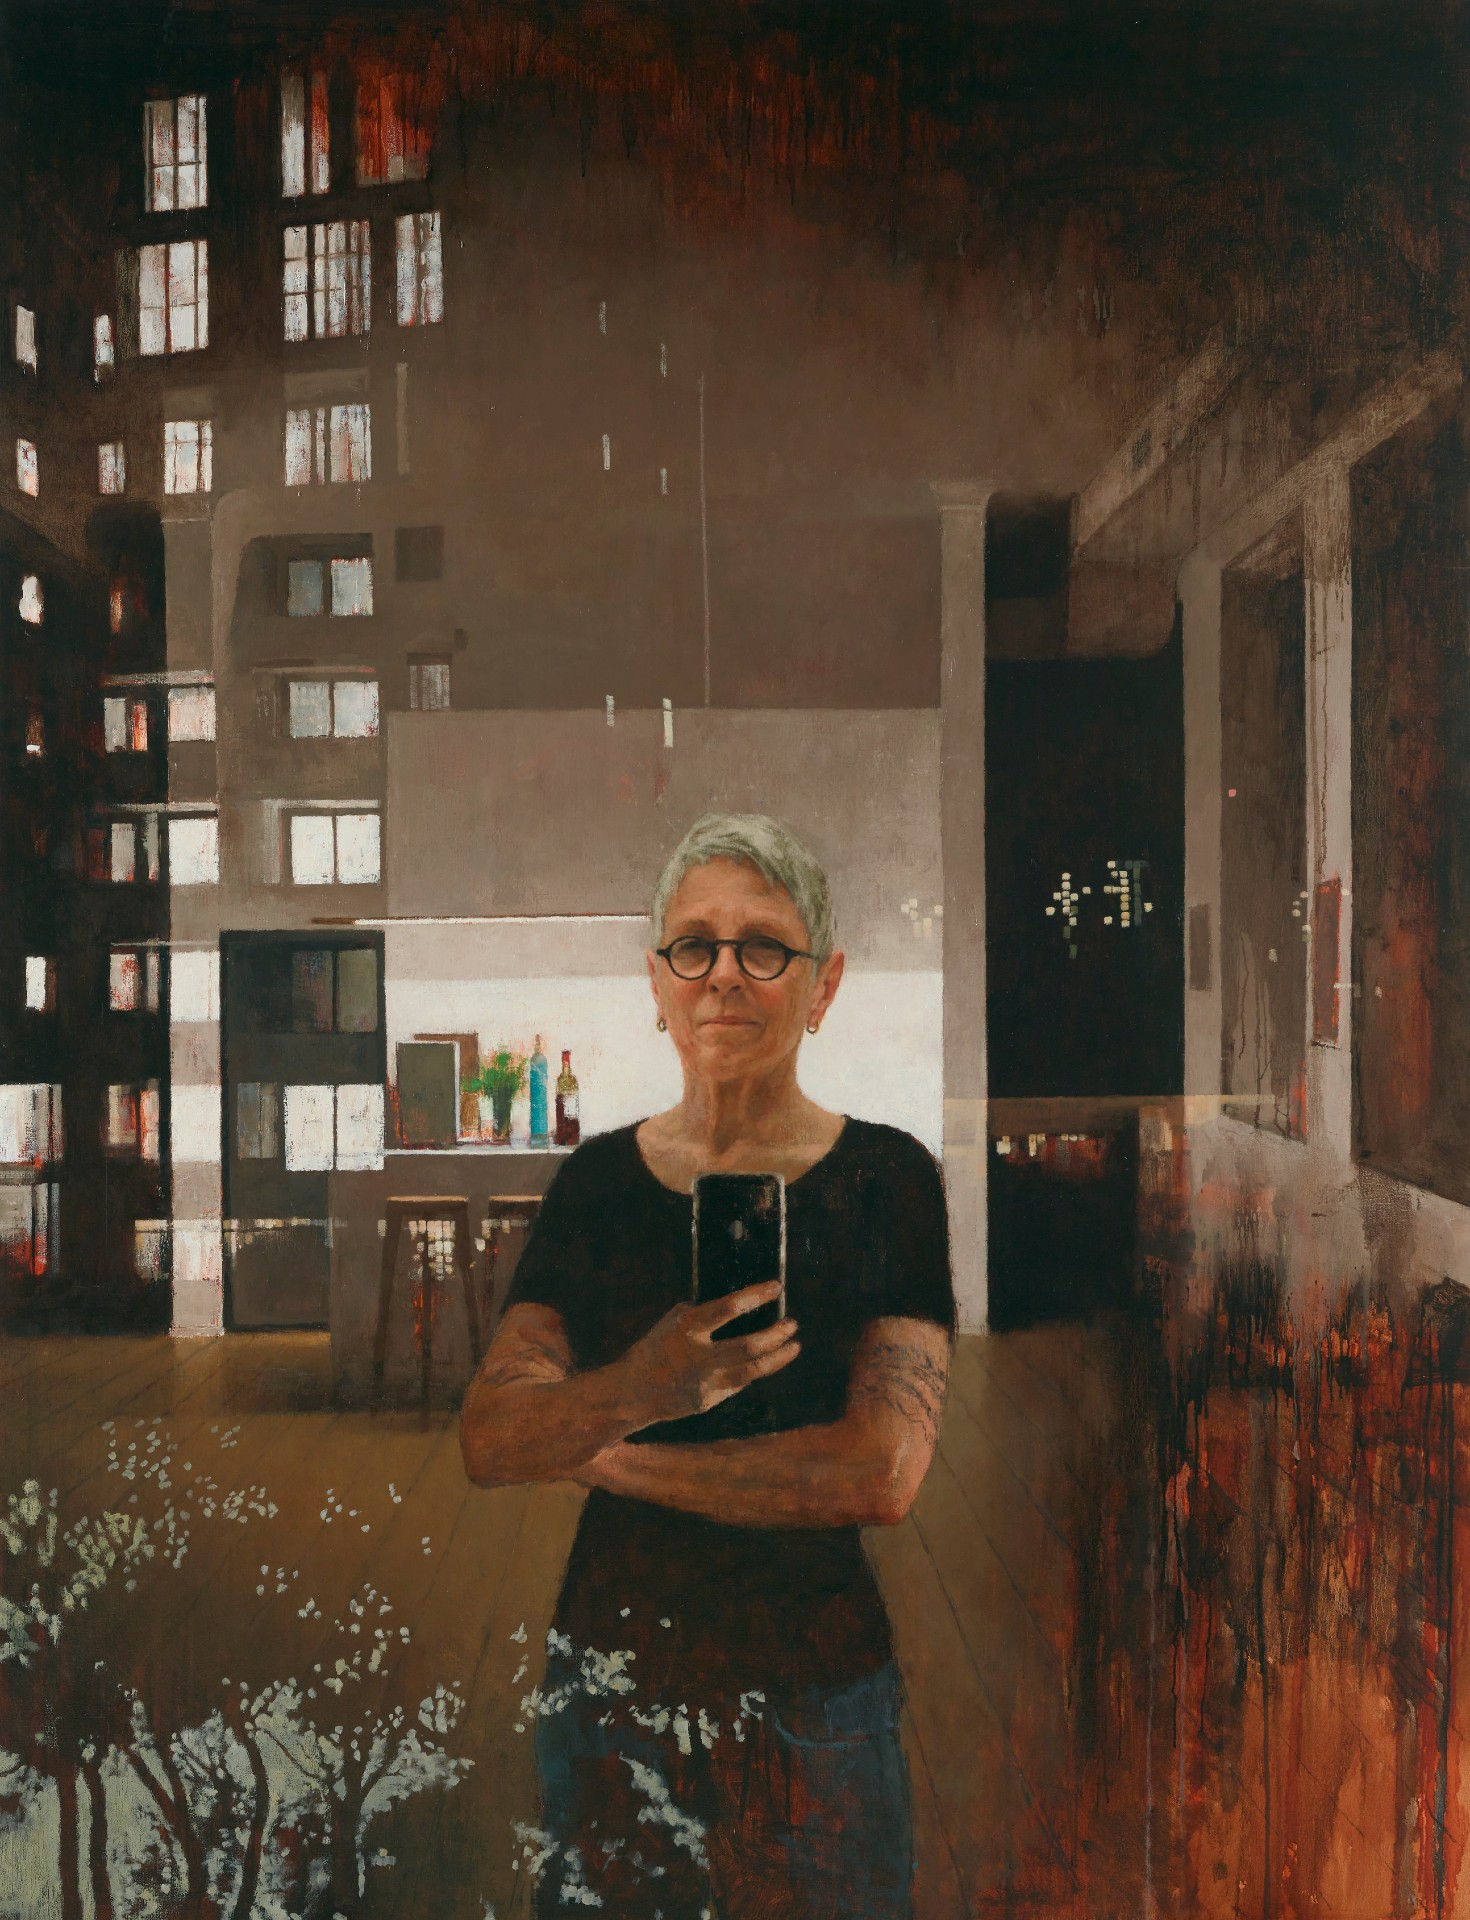 A painting of Jude Rae's reflection in a window, taking a selfie with her phone, showing the reflection and the view outside